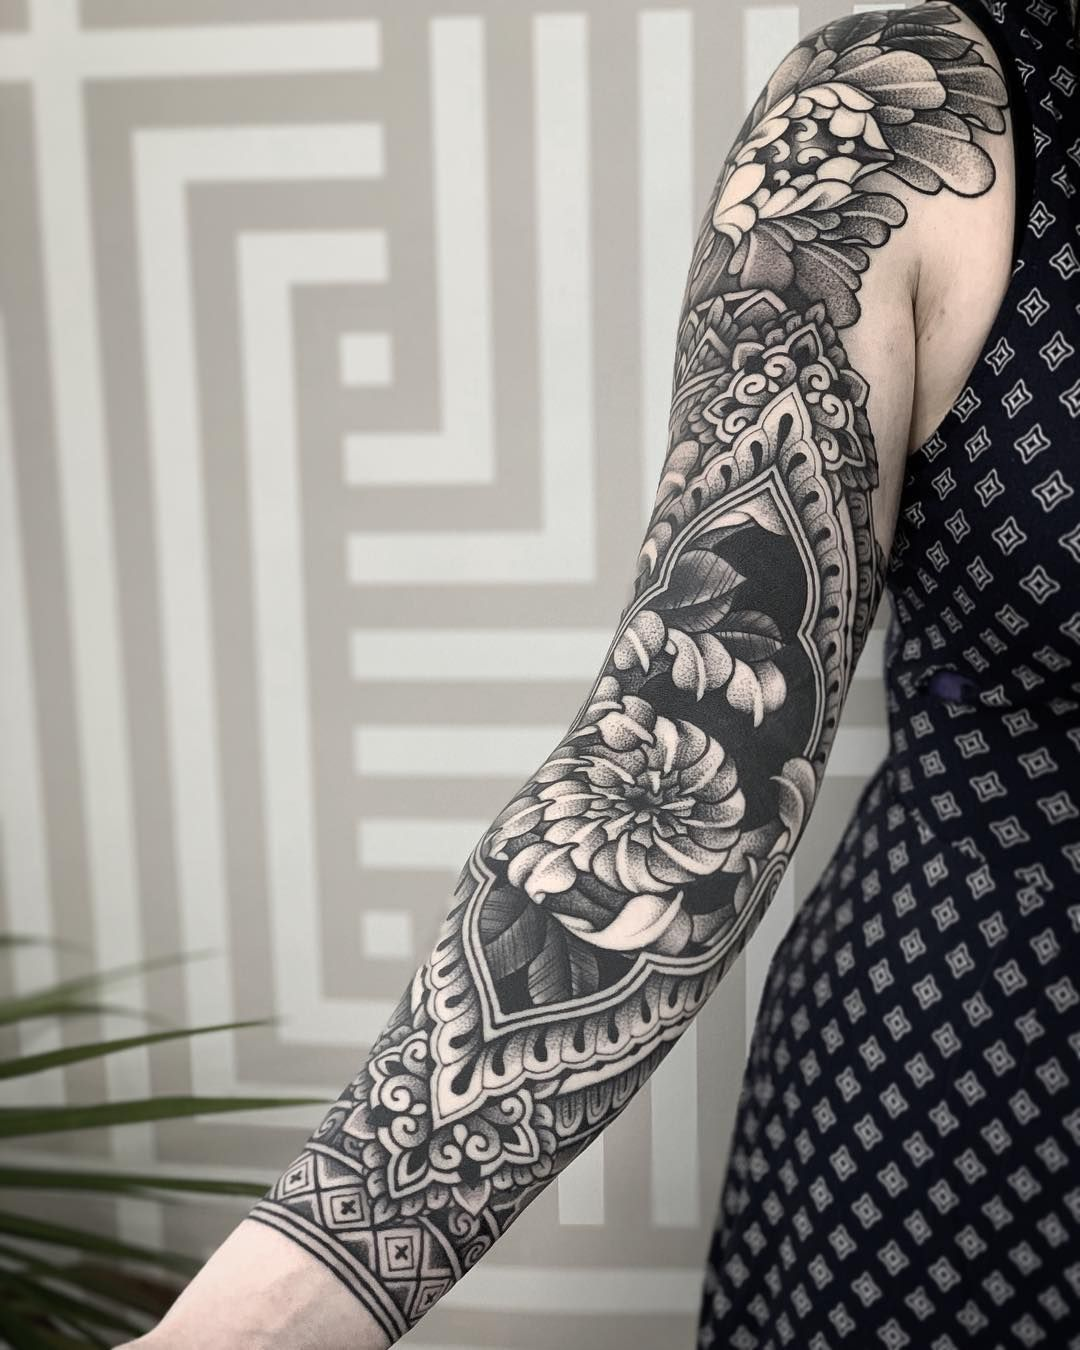 Ornamental Tattoo Artist Jack Peppiette Artwoonz Tattoo Artists Sleeve Tattoos Arm Tattoos